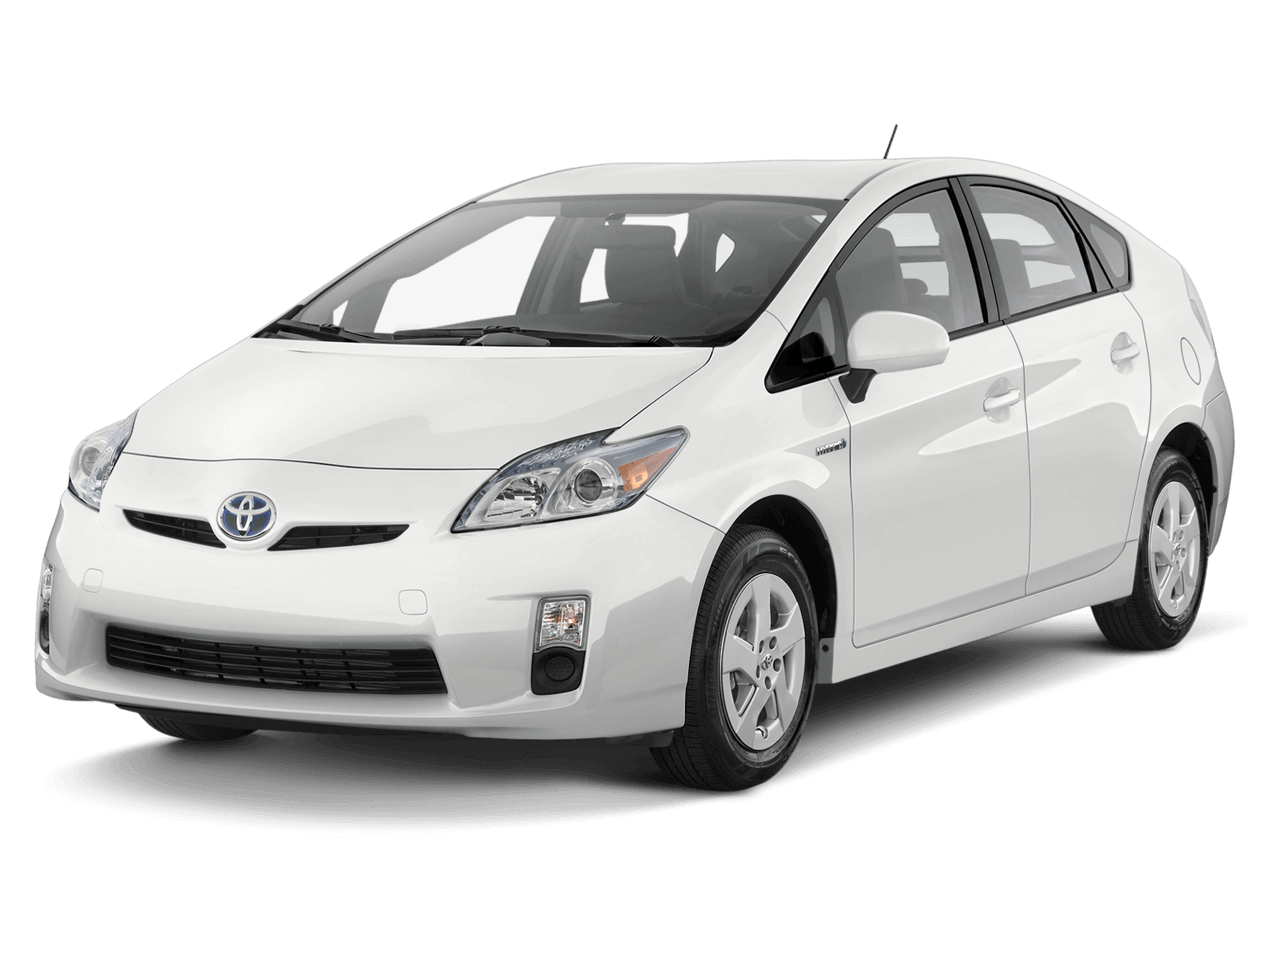 Hybrid Cars, what makes them different?